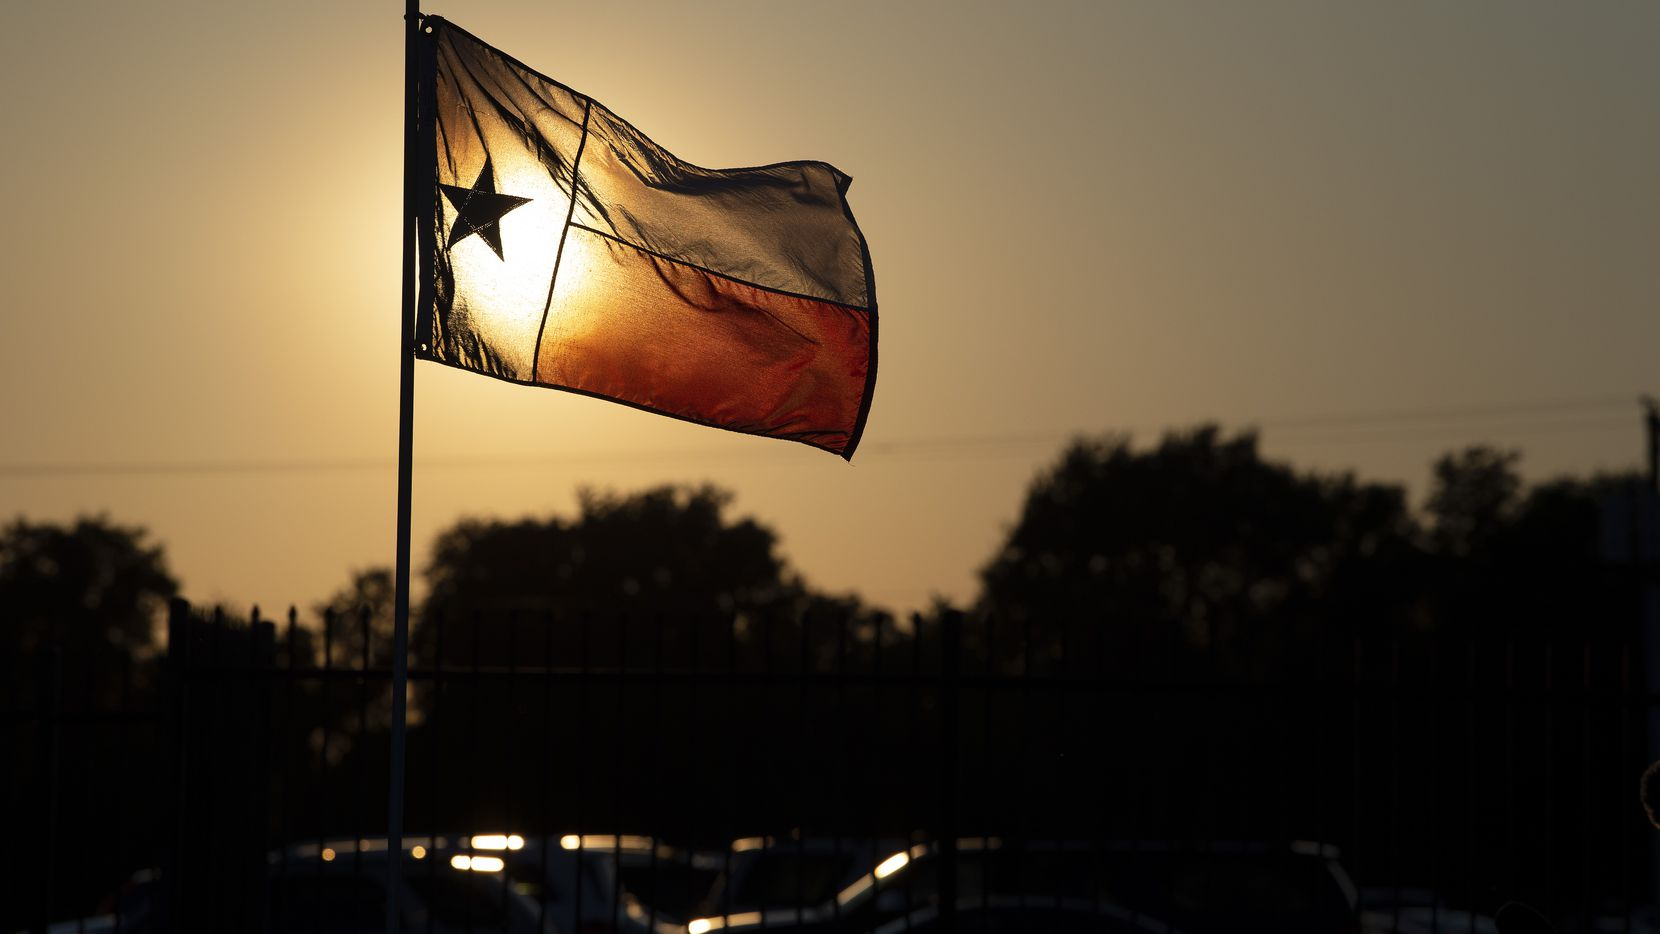 Texas fell two spots in a recent CNBC ranking of best states for business.